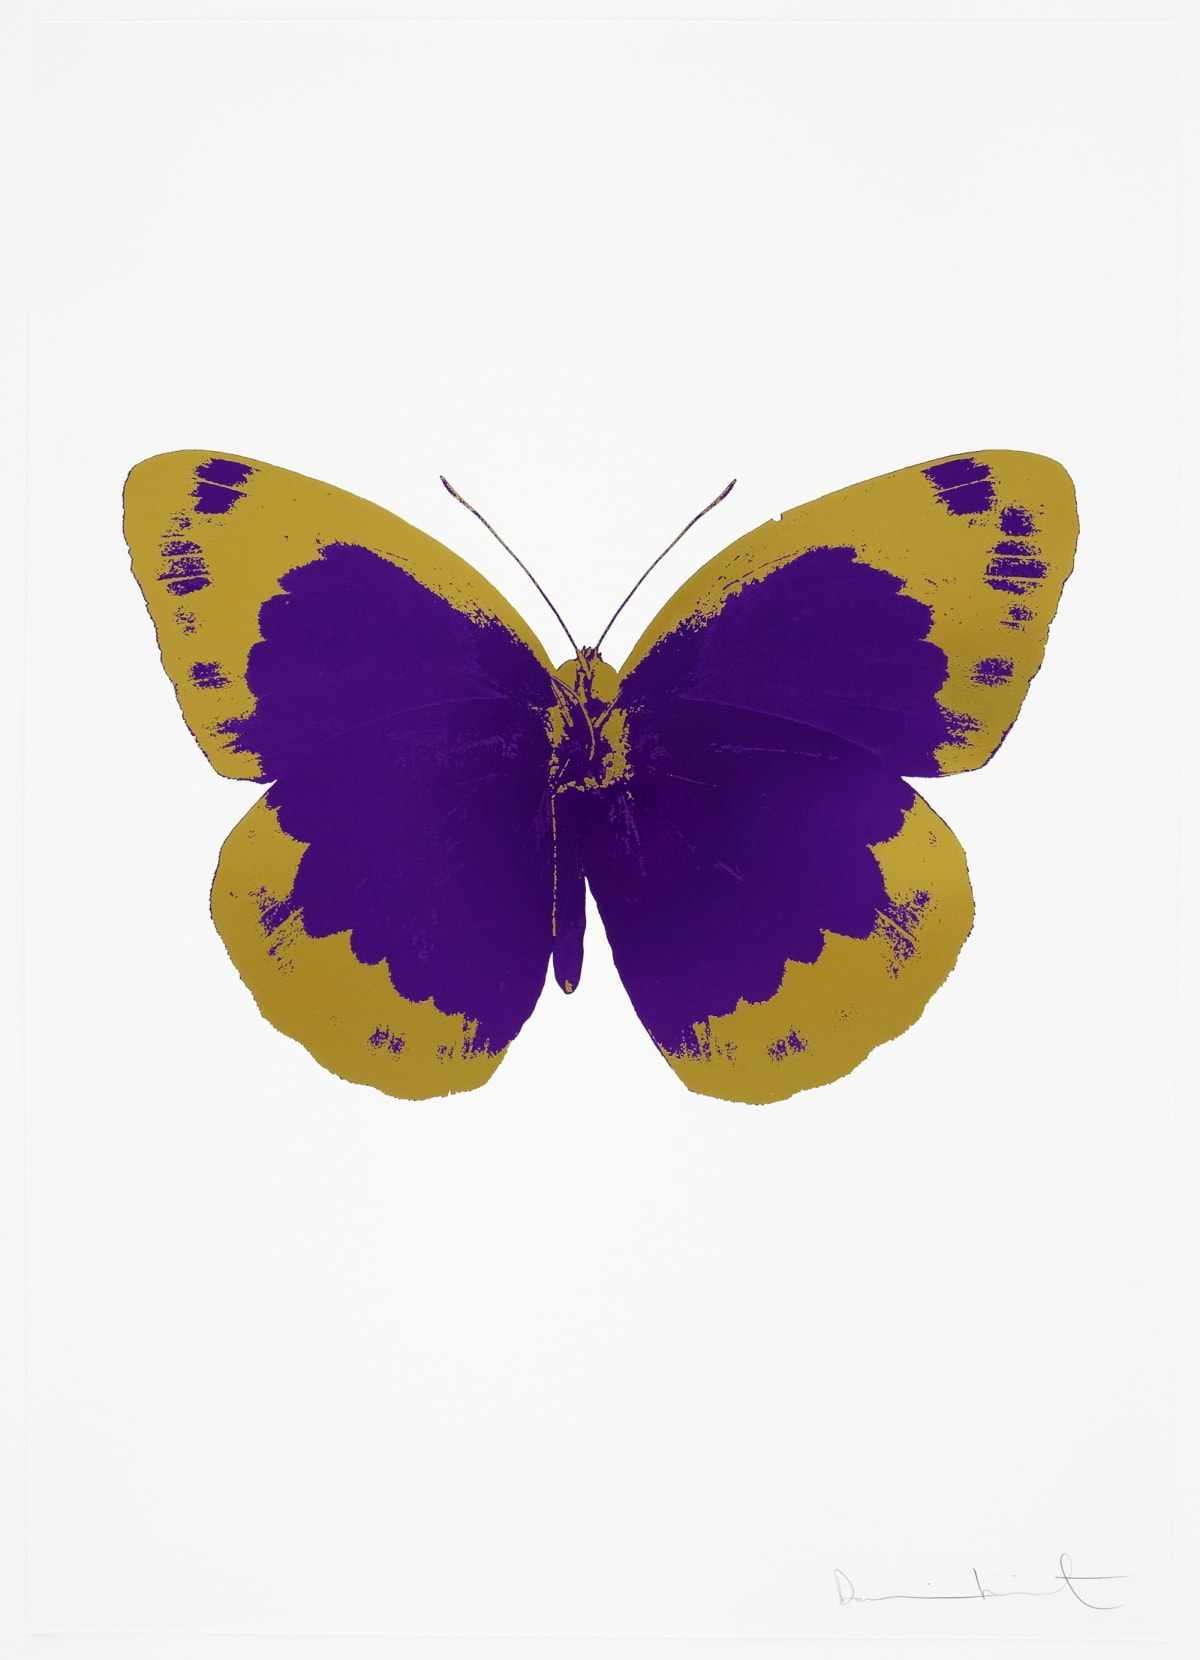 Damien Hirst The Souls II - Imperial Purple/Oriental Gold/Blind Impression, 2010 2 colour foil block on 300gsm Arches 88 archival paper. Signed and numbered. Published by Paul Stolper and Other Criteria 72 x 51cm OC7851 /658-34 Edition of 15